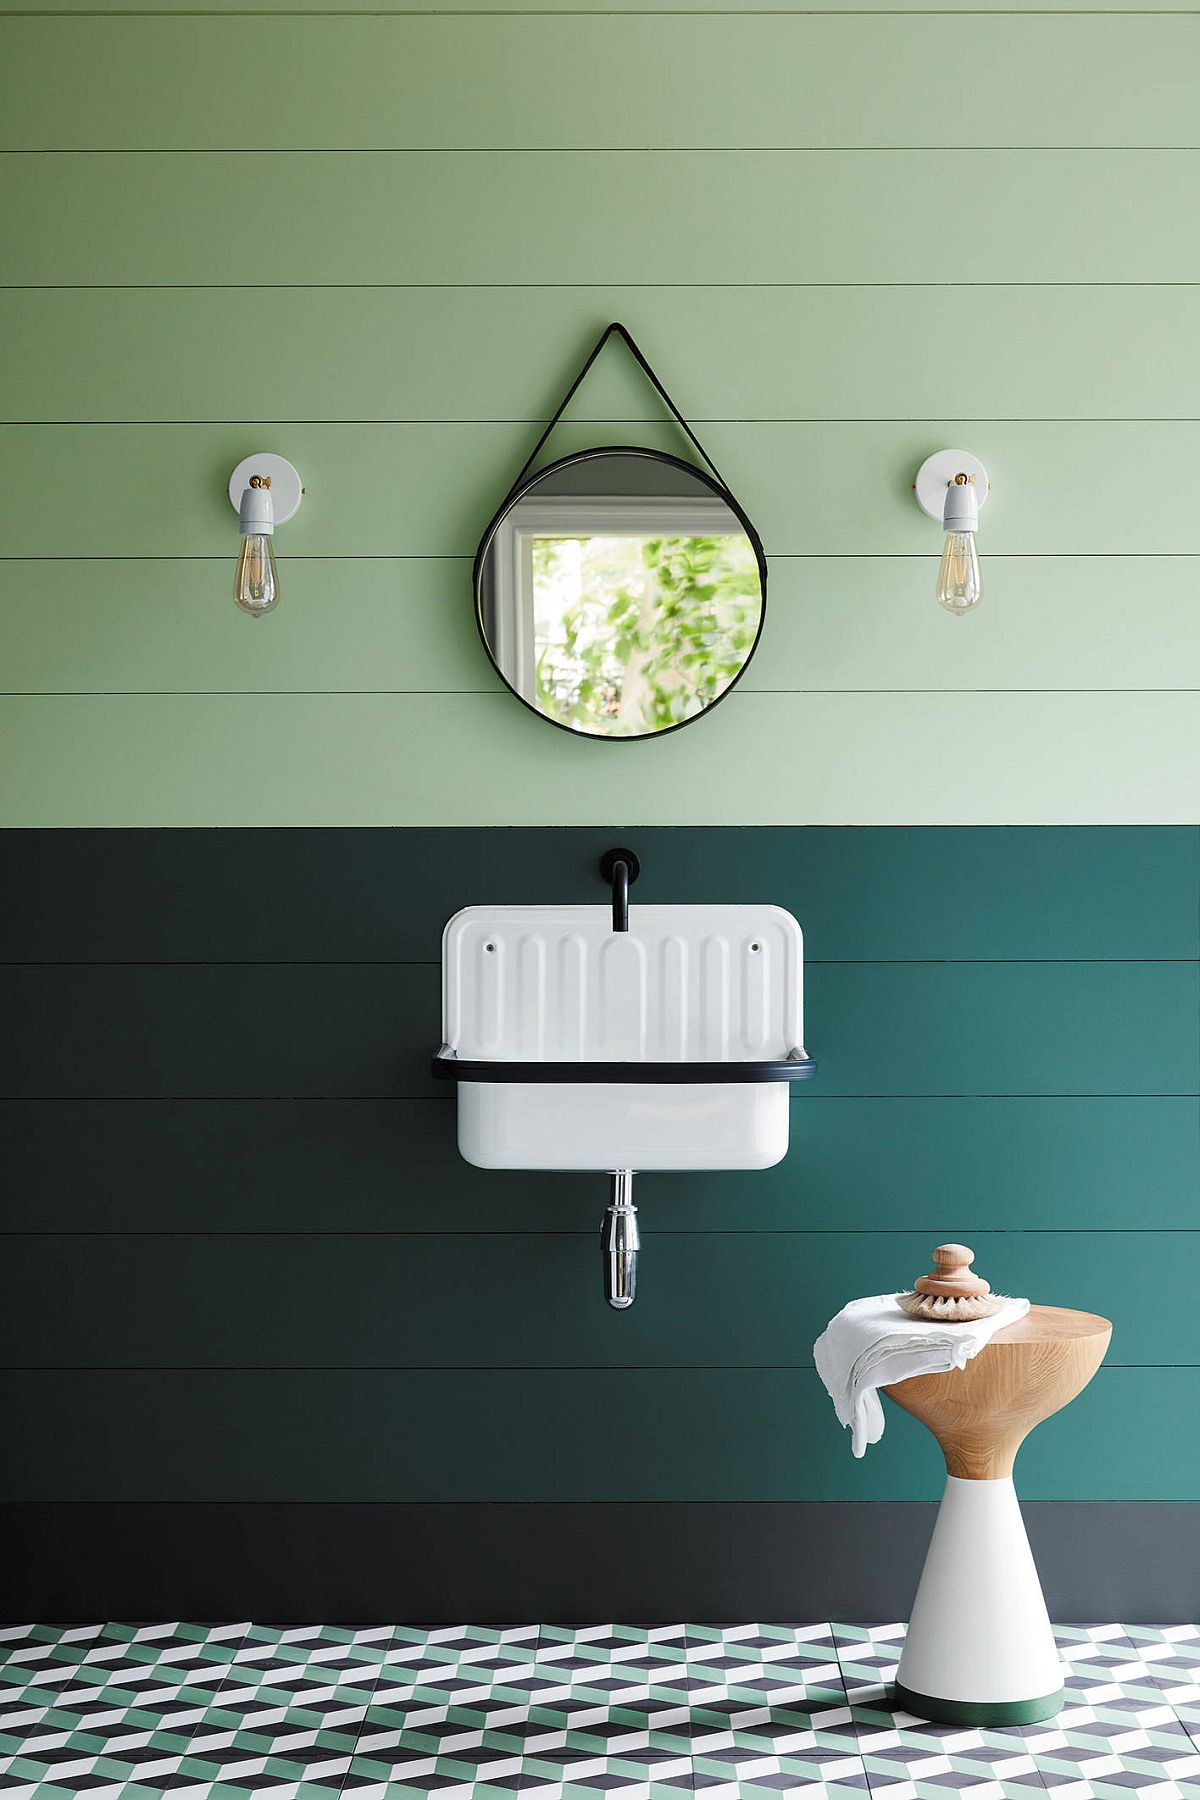 Bathroom Trends for 2020: 25 Ideas and Inspirations for the New Year